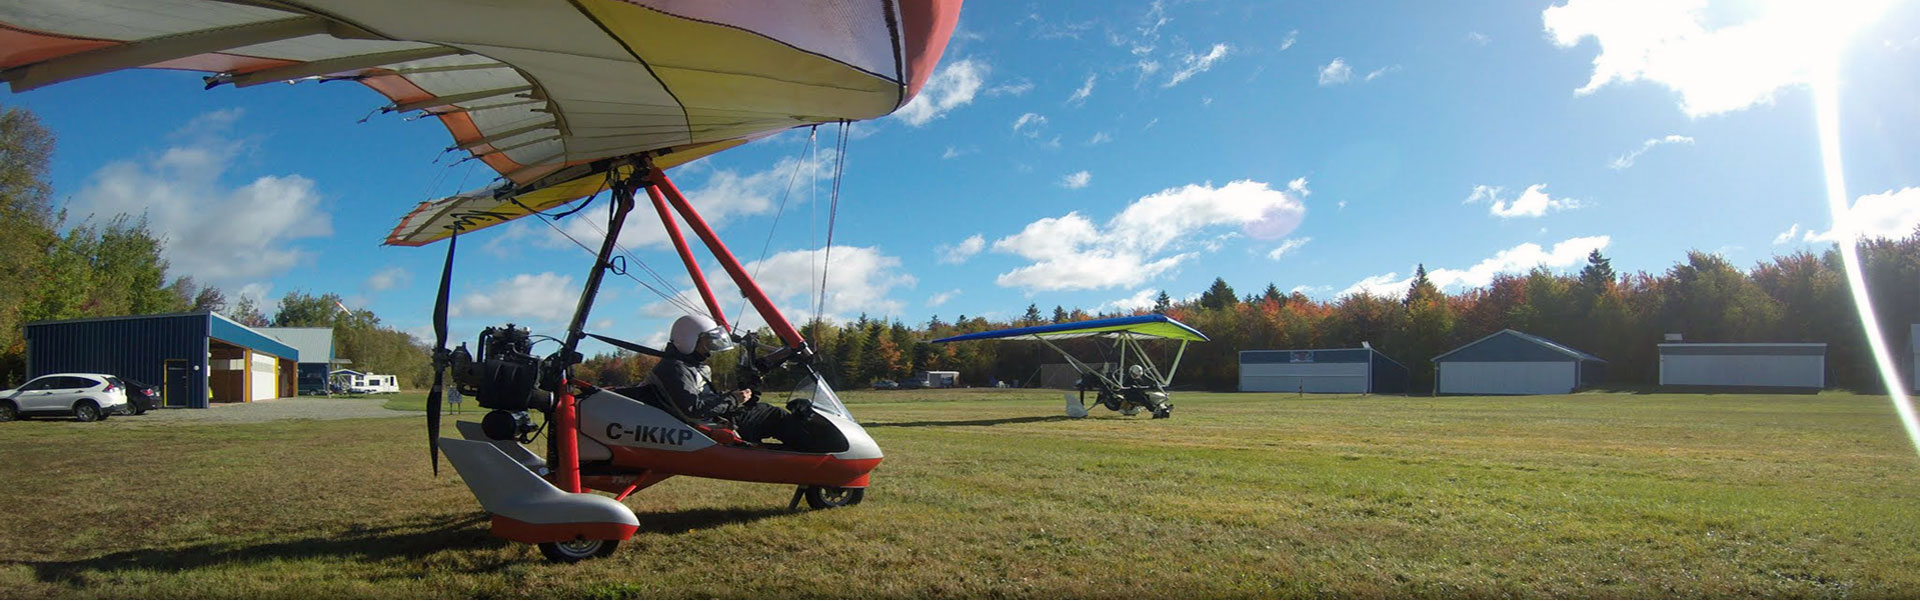 ULP Aviation Flight School for ultralight aircraft Quebec